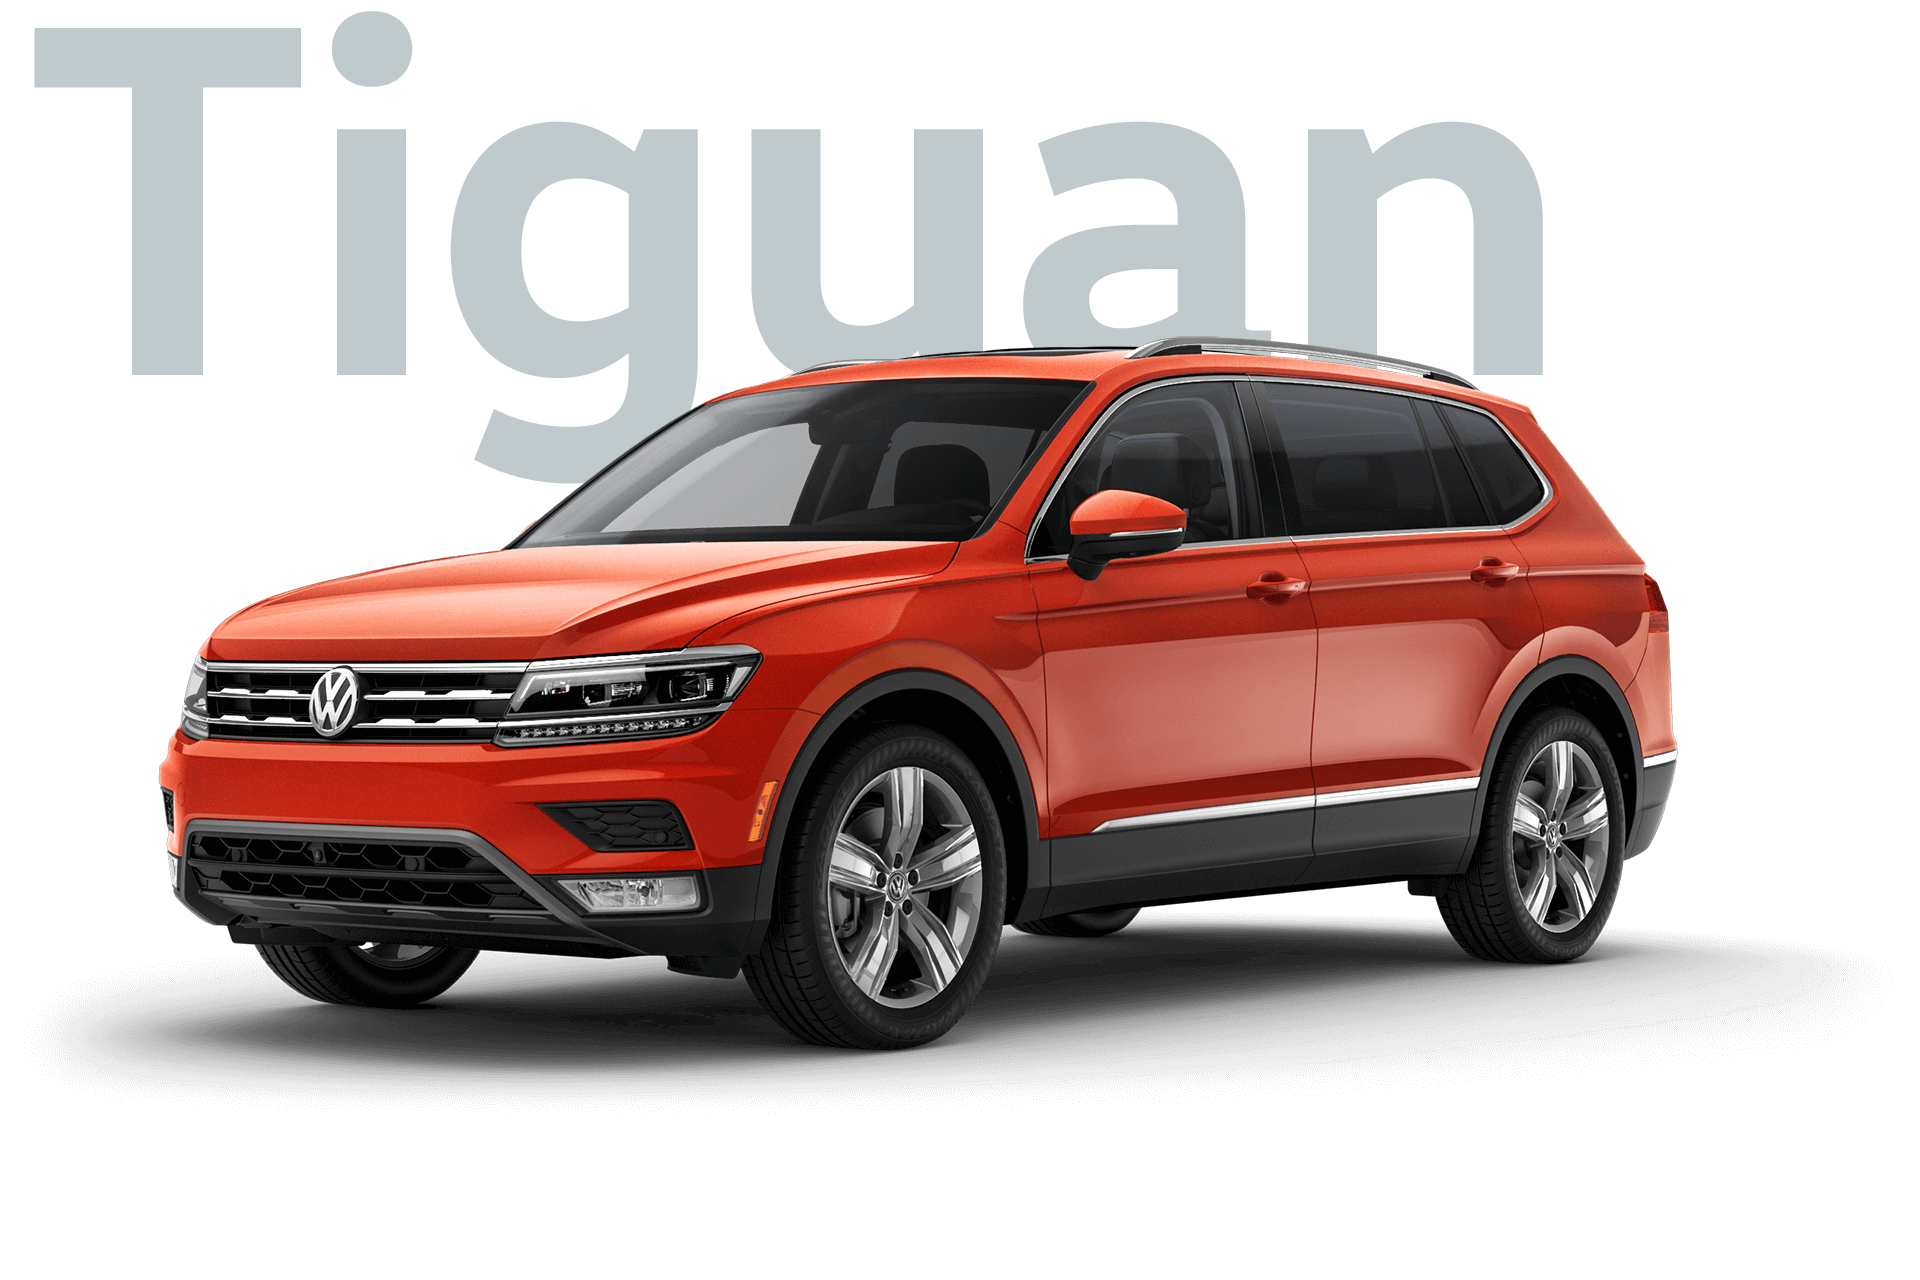 2018 Vw Tiguan 24 595 The Stylish Suv Volkswagen Volkswagen Mid Size Suv Sporty Suv